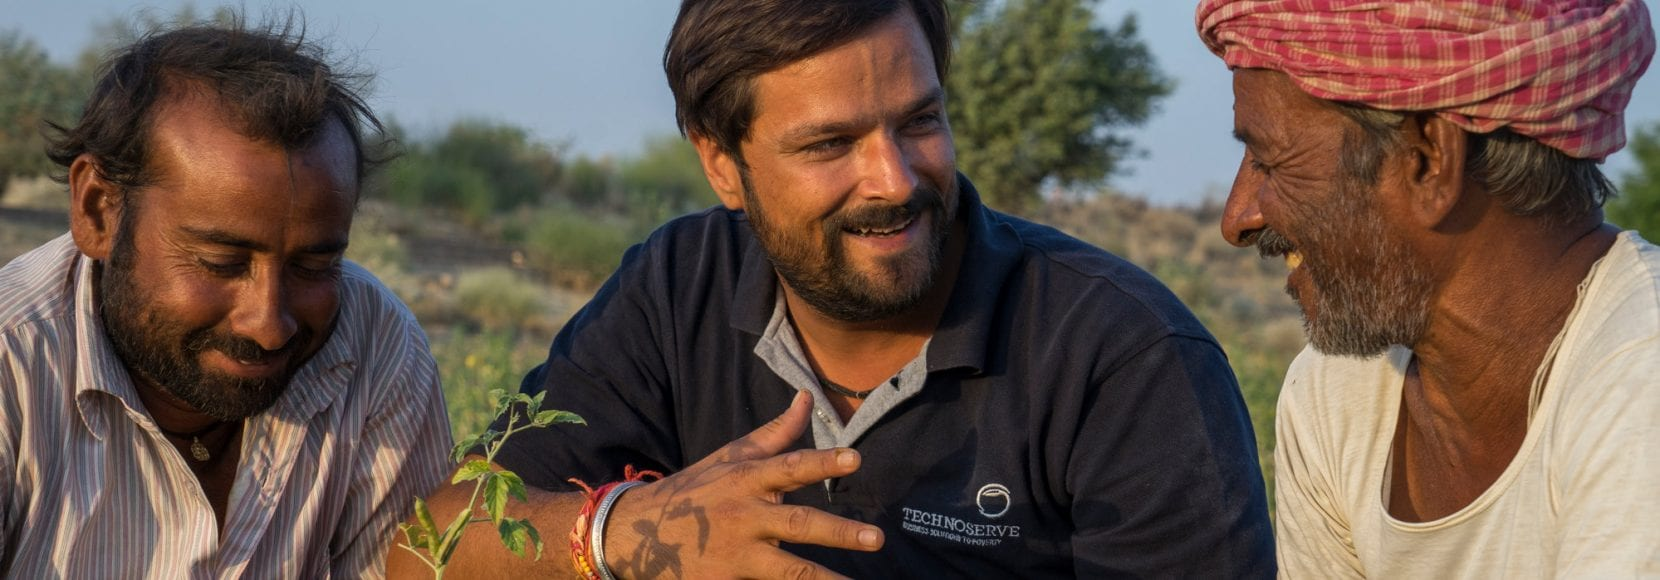 Technoserve Project Manager discusses plant diseases with guar farmers in India